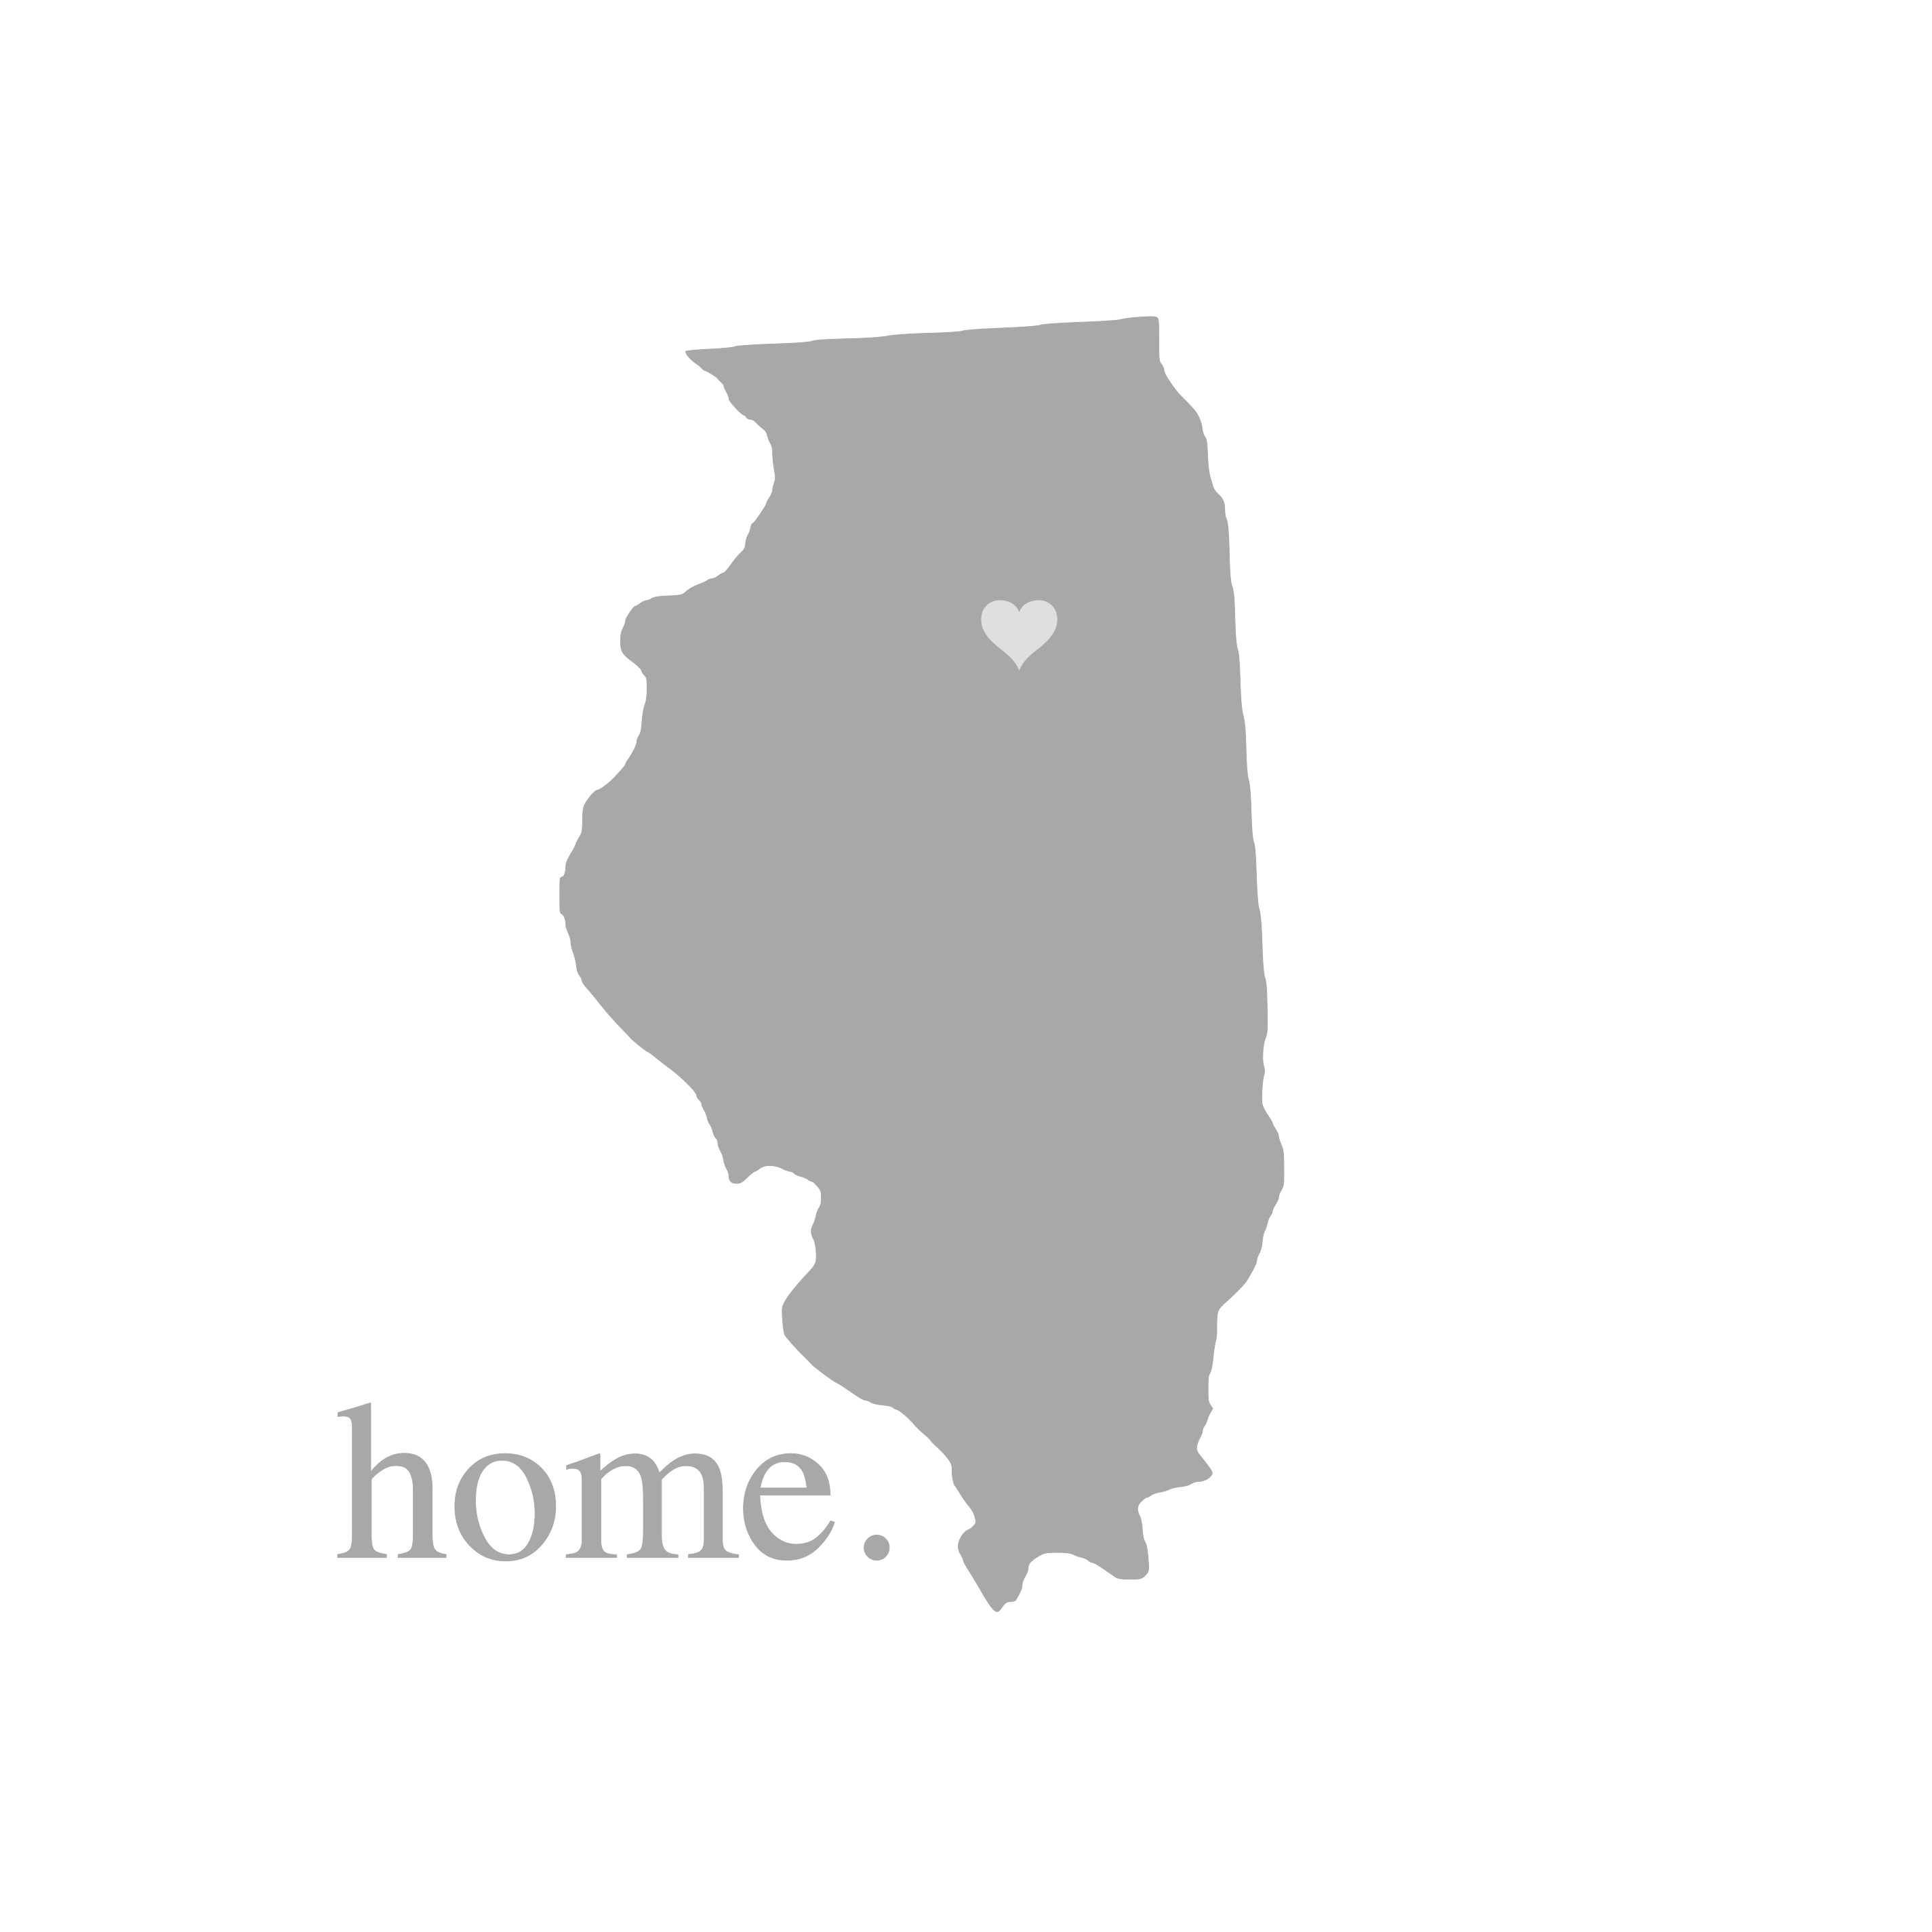 8120 Illinois Home State